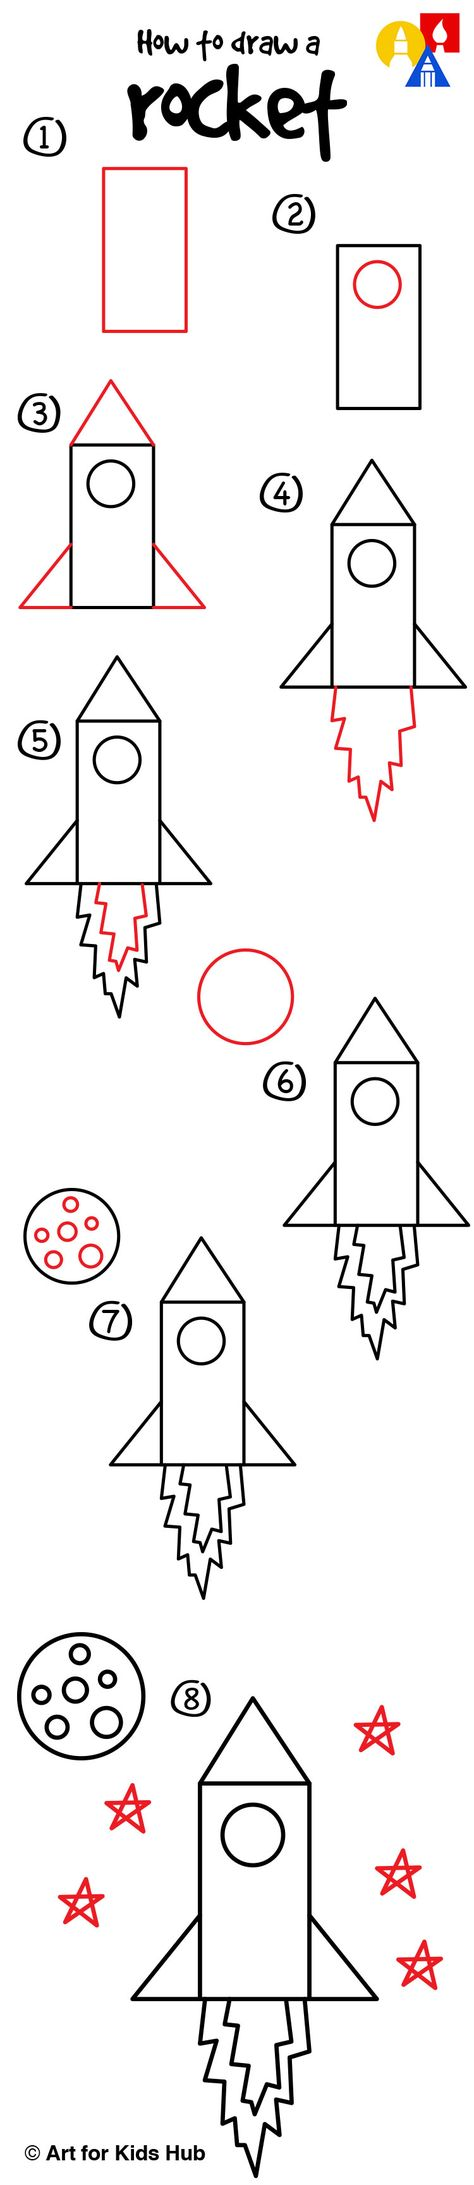 Learn how to draw a rocket with your young artists! This lesson